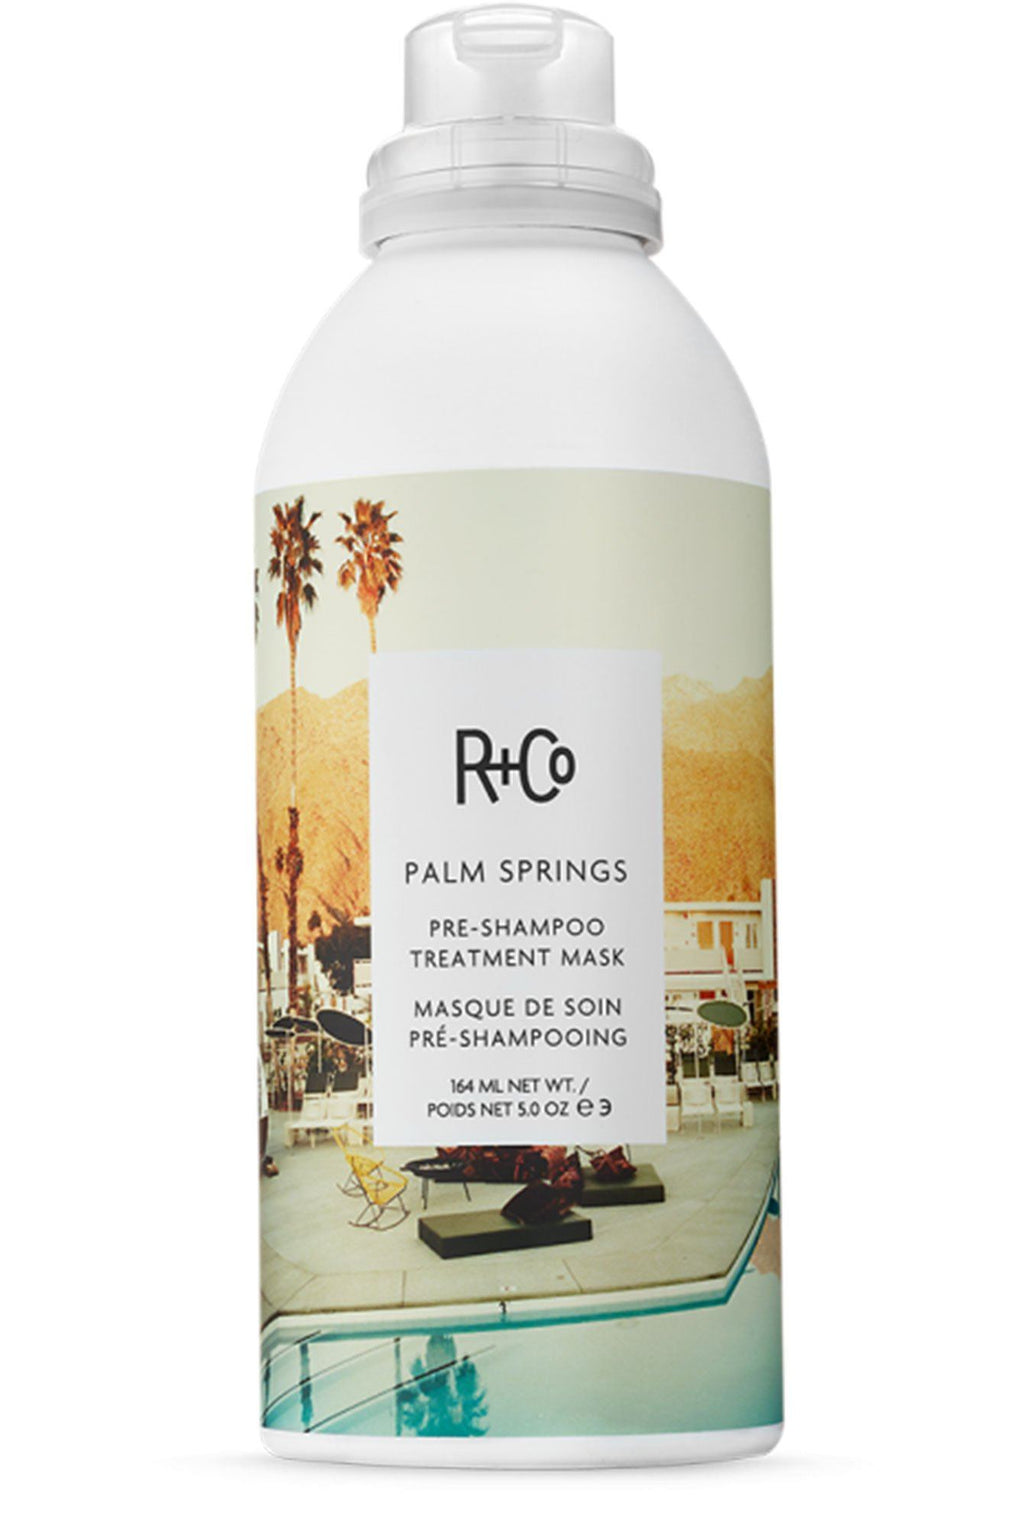 R+Co | Palm Springs Pre-Shampoo Treatment